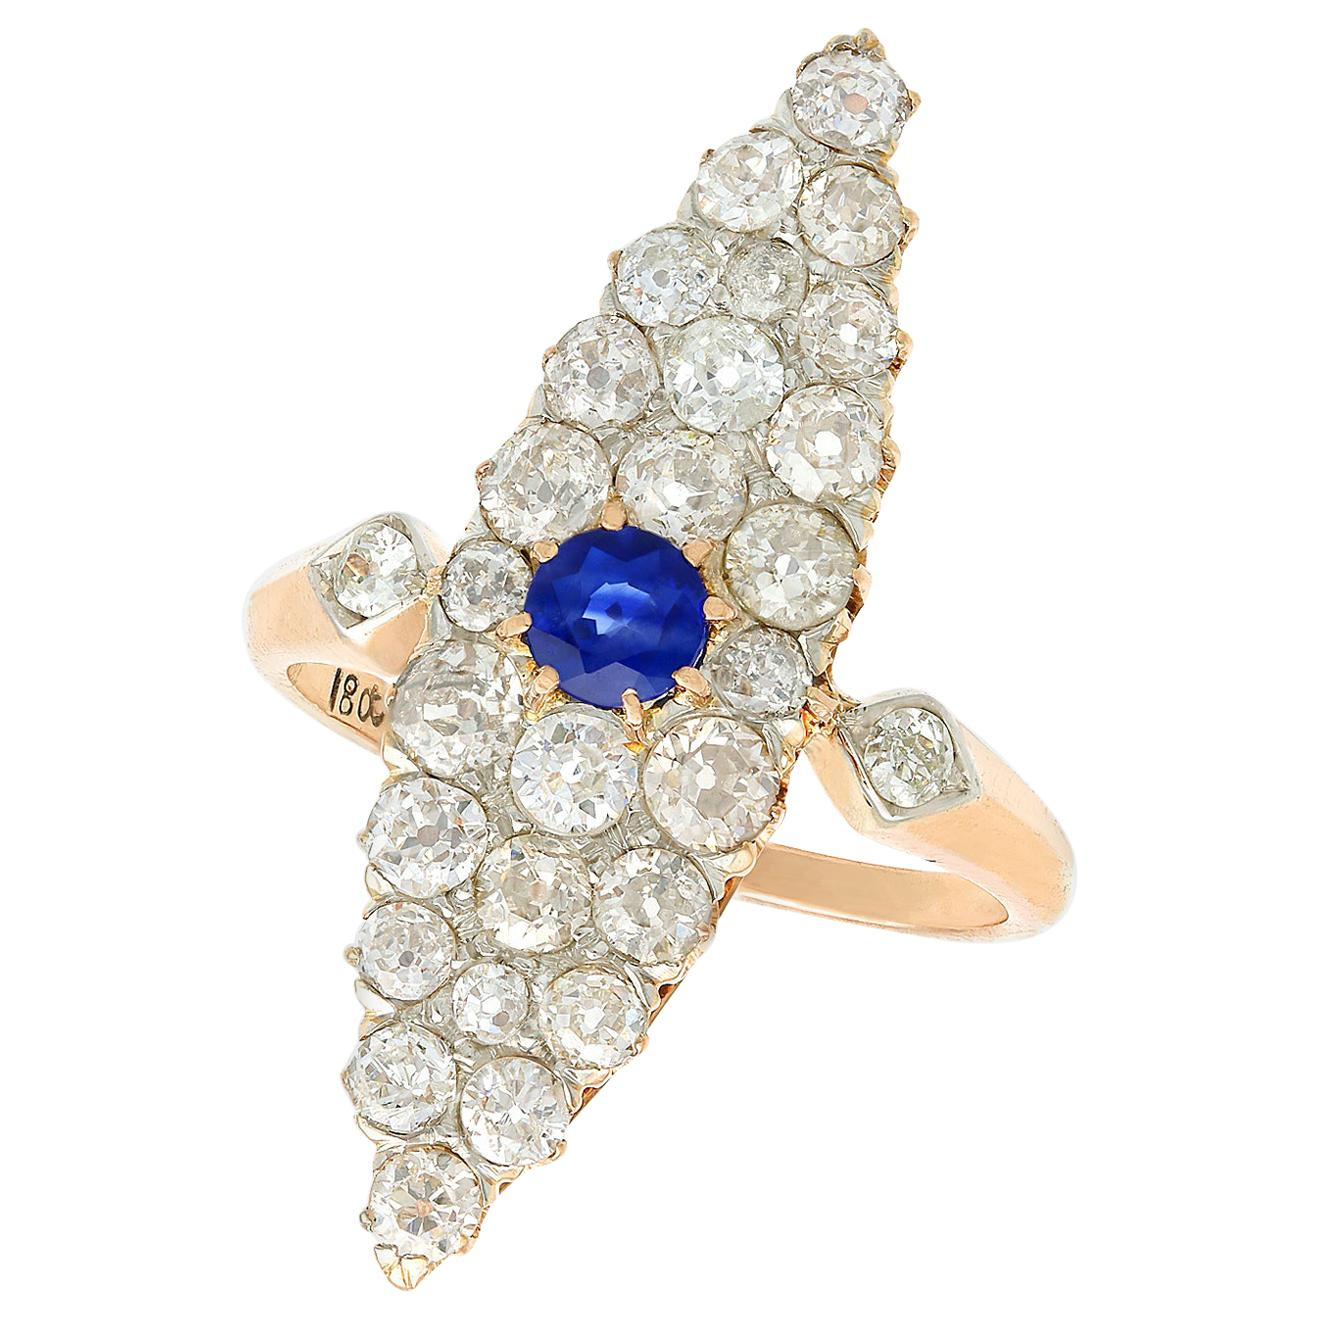 Antique 2.92 Carat Diamond and Sapphire Yellow Gold Marquise Ring